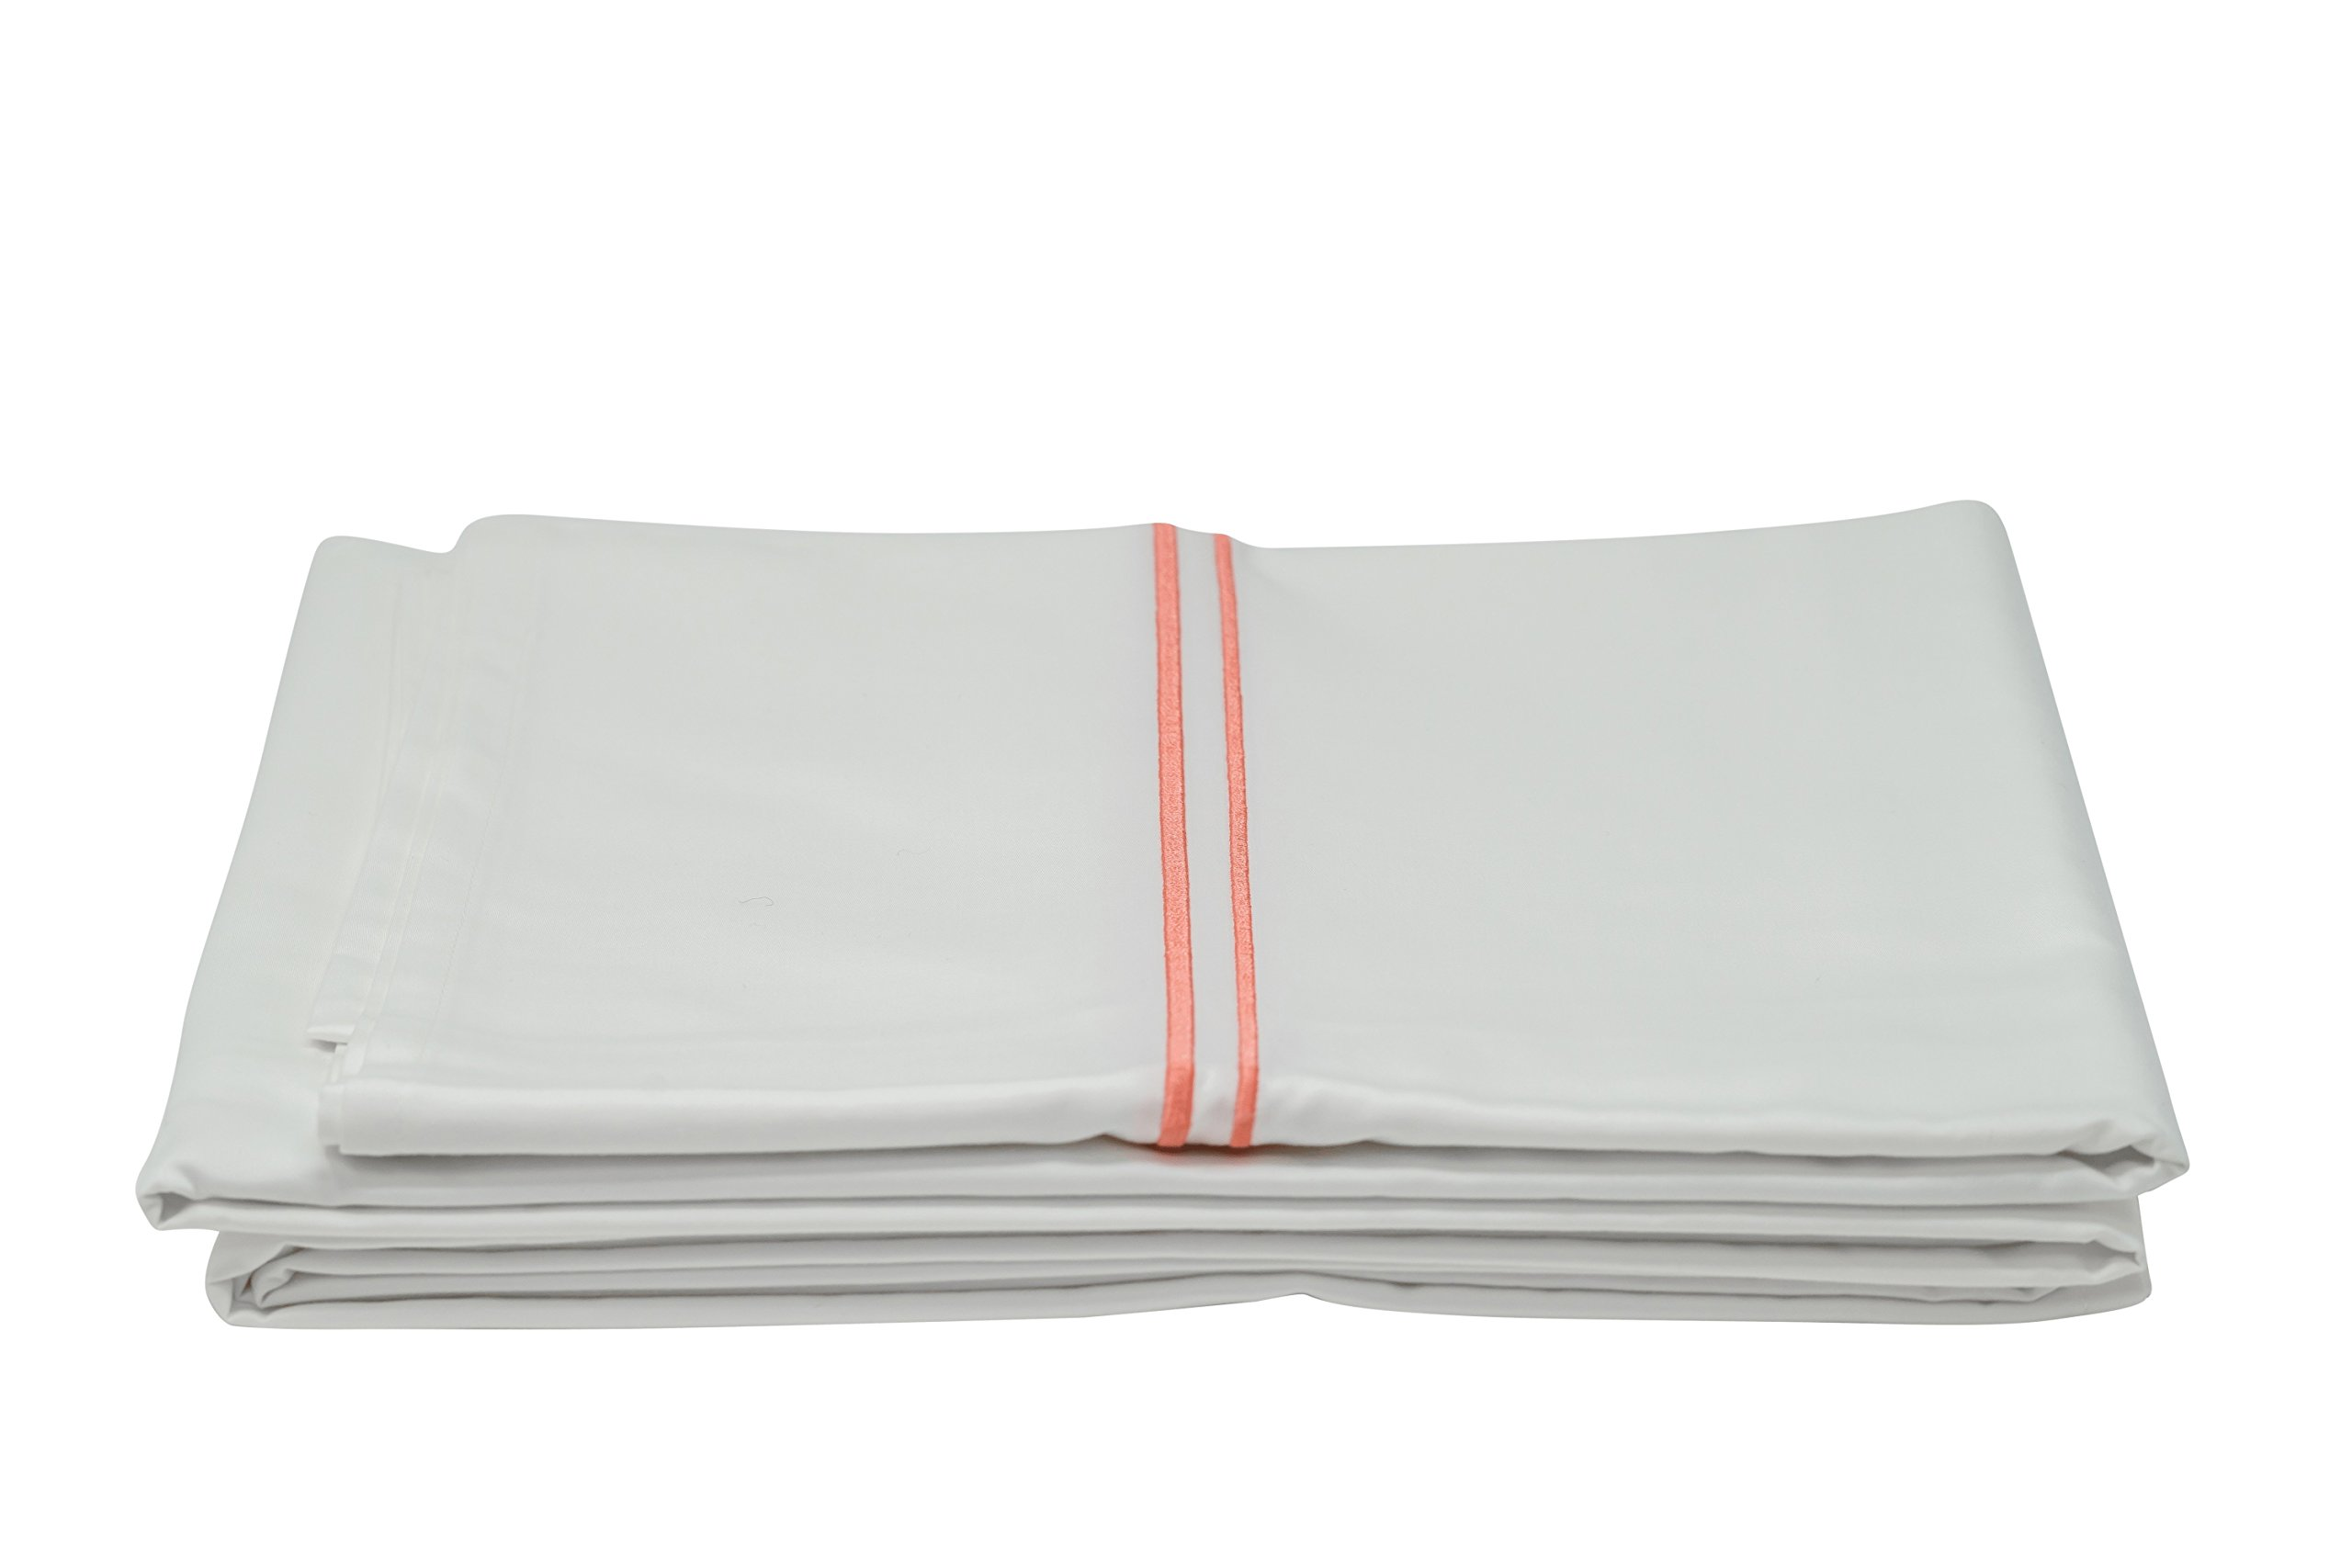 Modern Zinc Sheet Set - Innovative Antibacterial Zinc Infused Bedding - Luxuriously Soft 400 Thread Count Cotton (Queen/White) by Modern Zinc (Image #5)